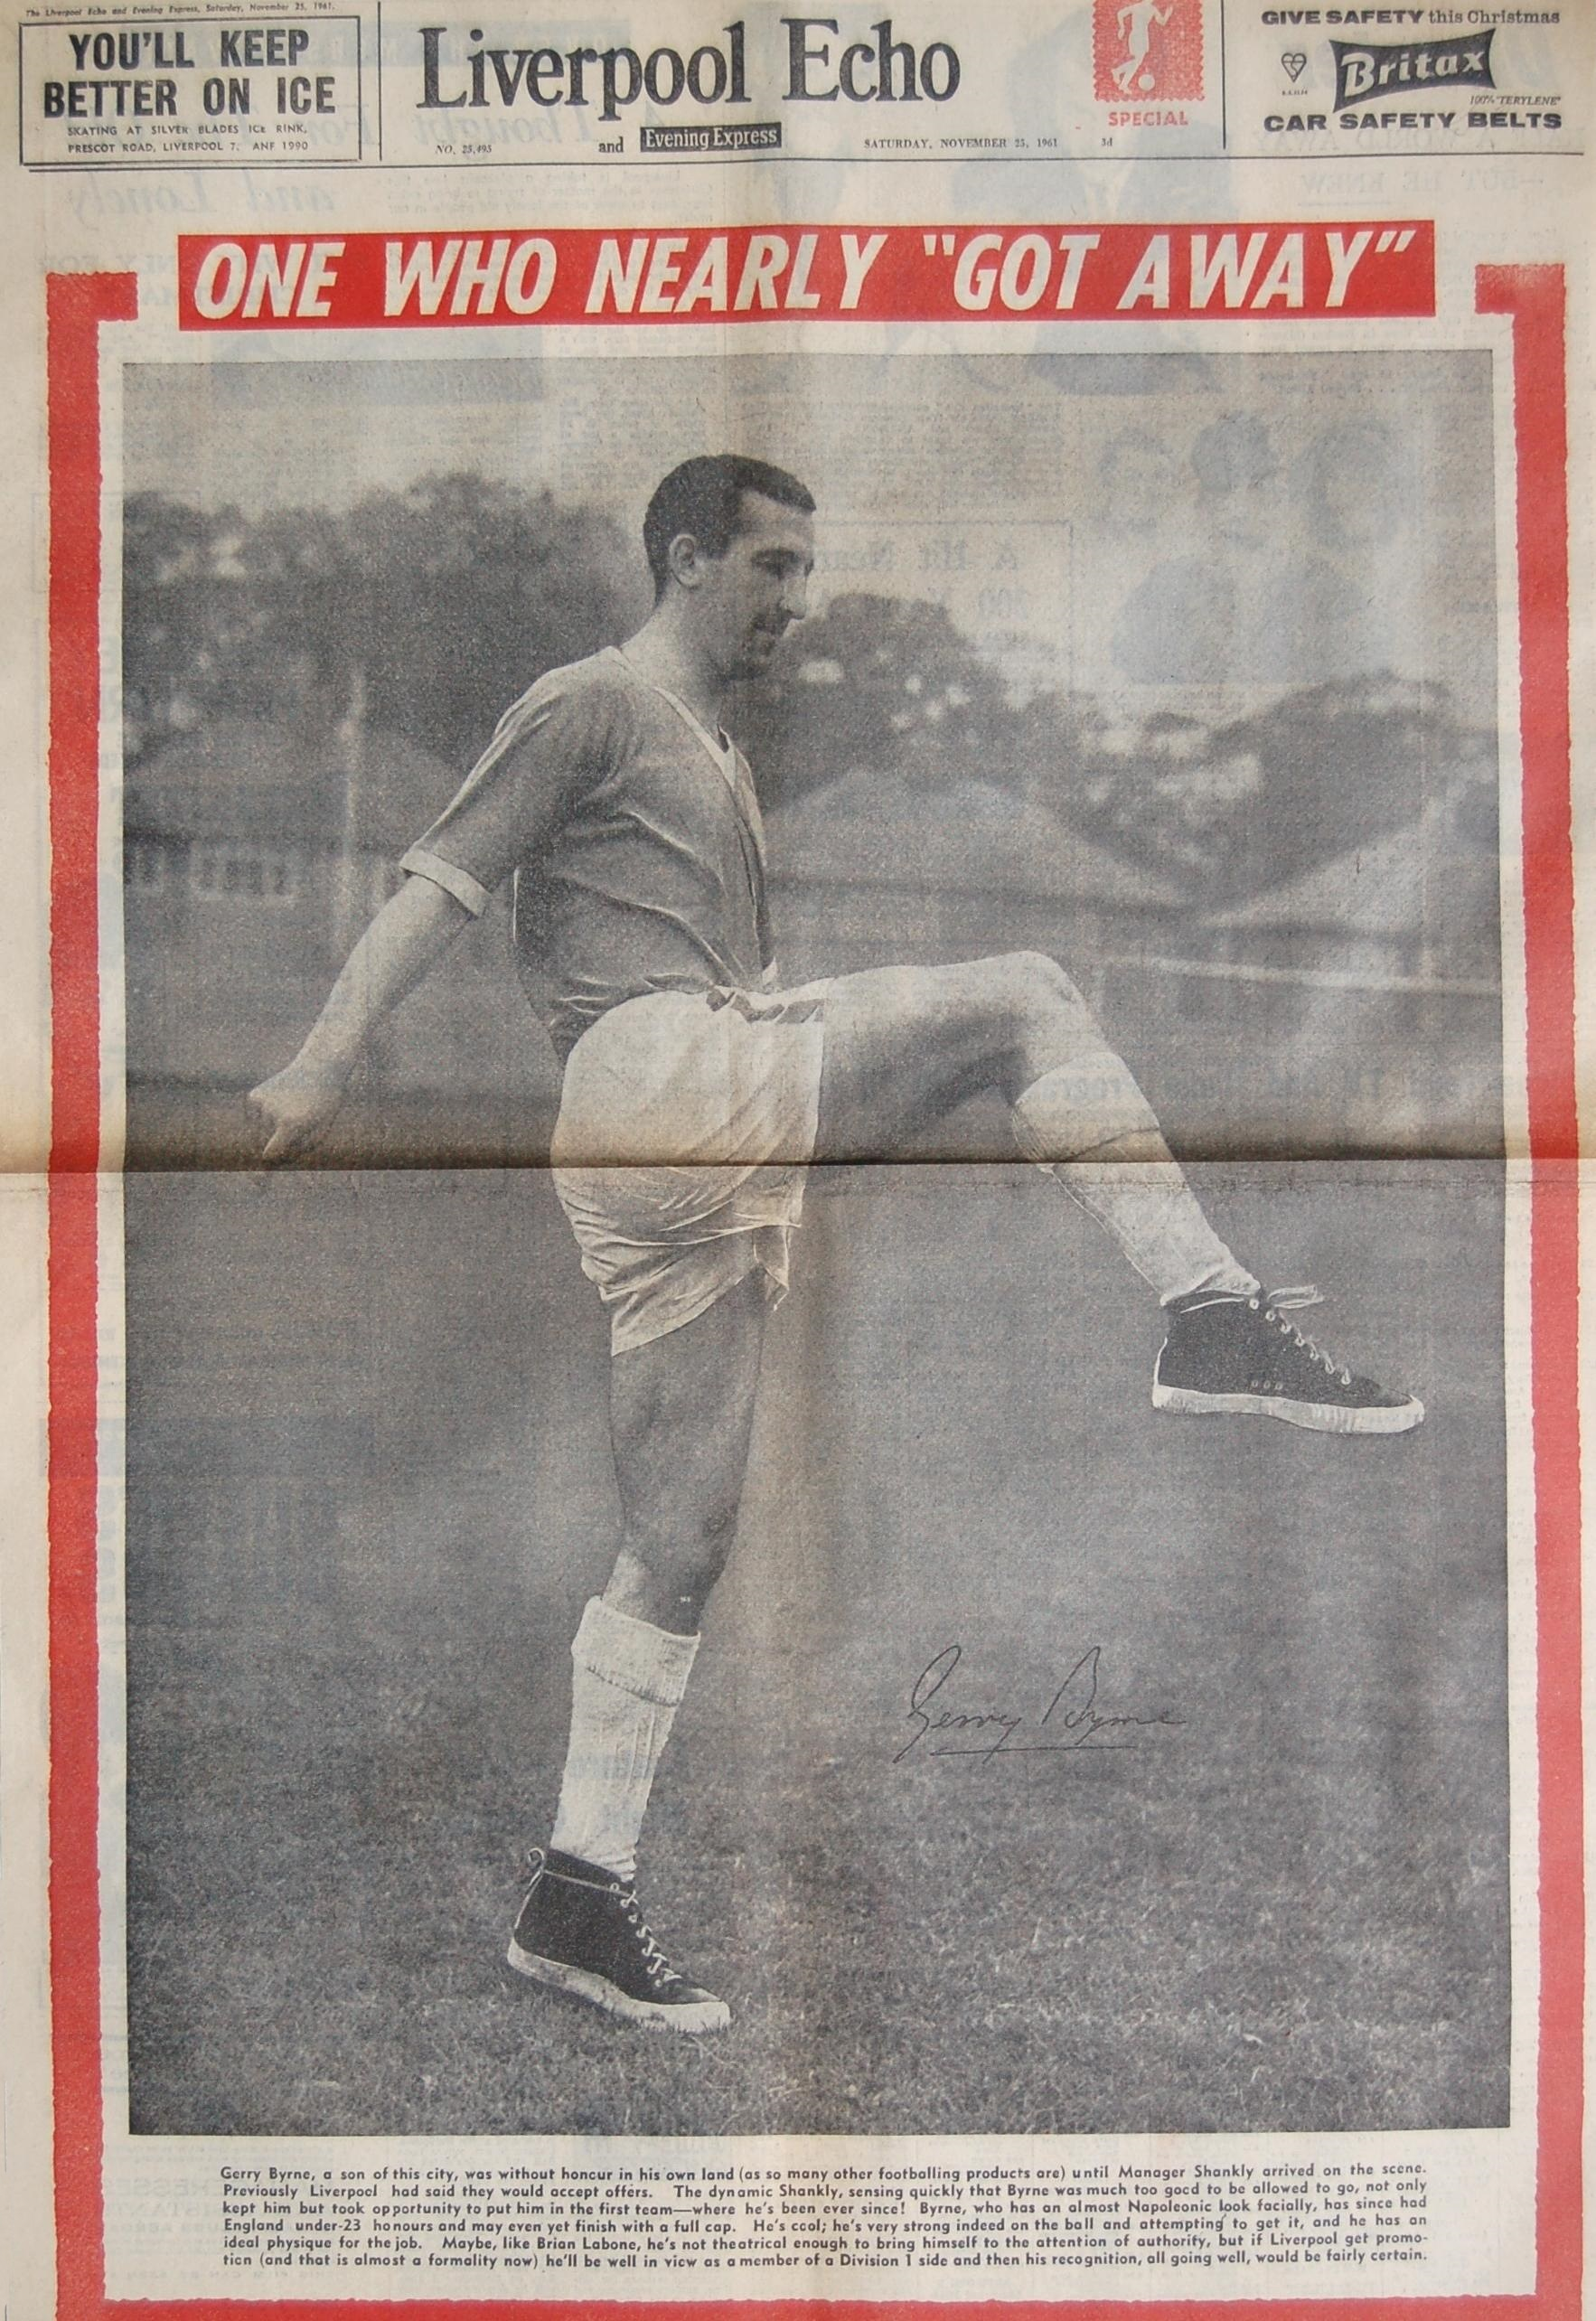 Gerry Byrne on the cover of the Liverpool Echo on 23 November 1961